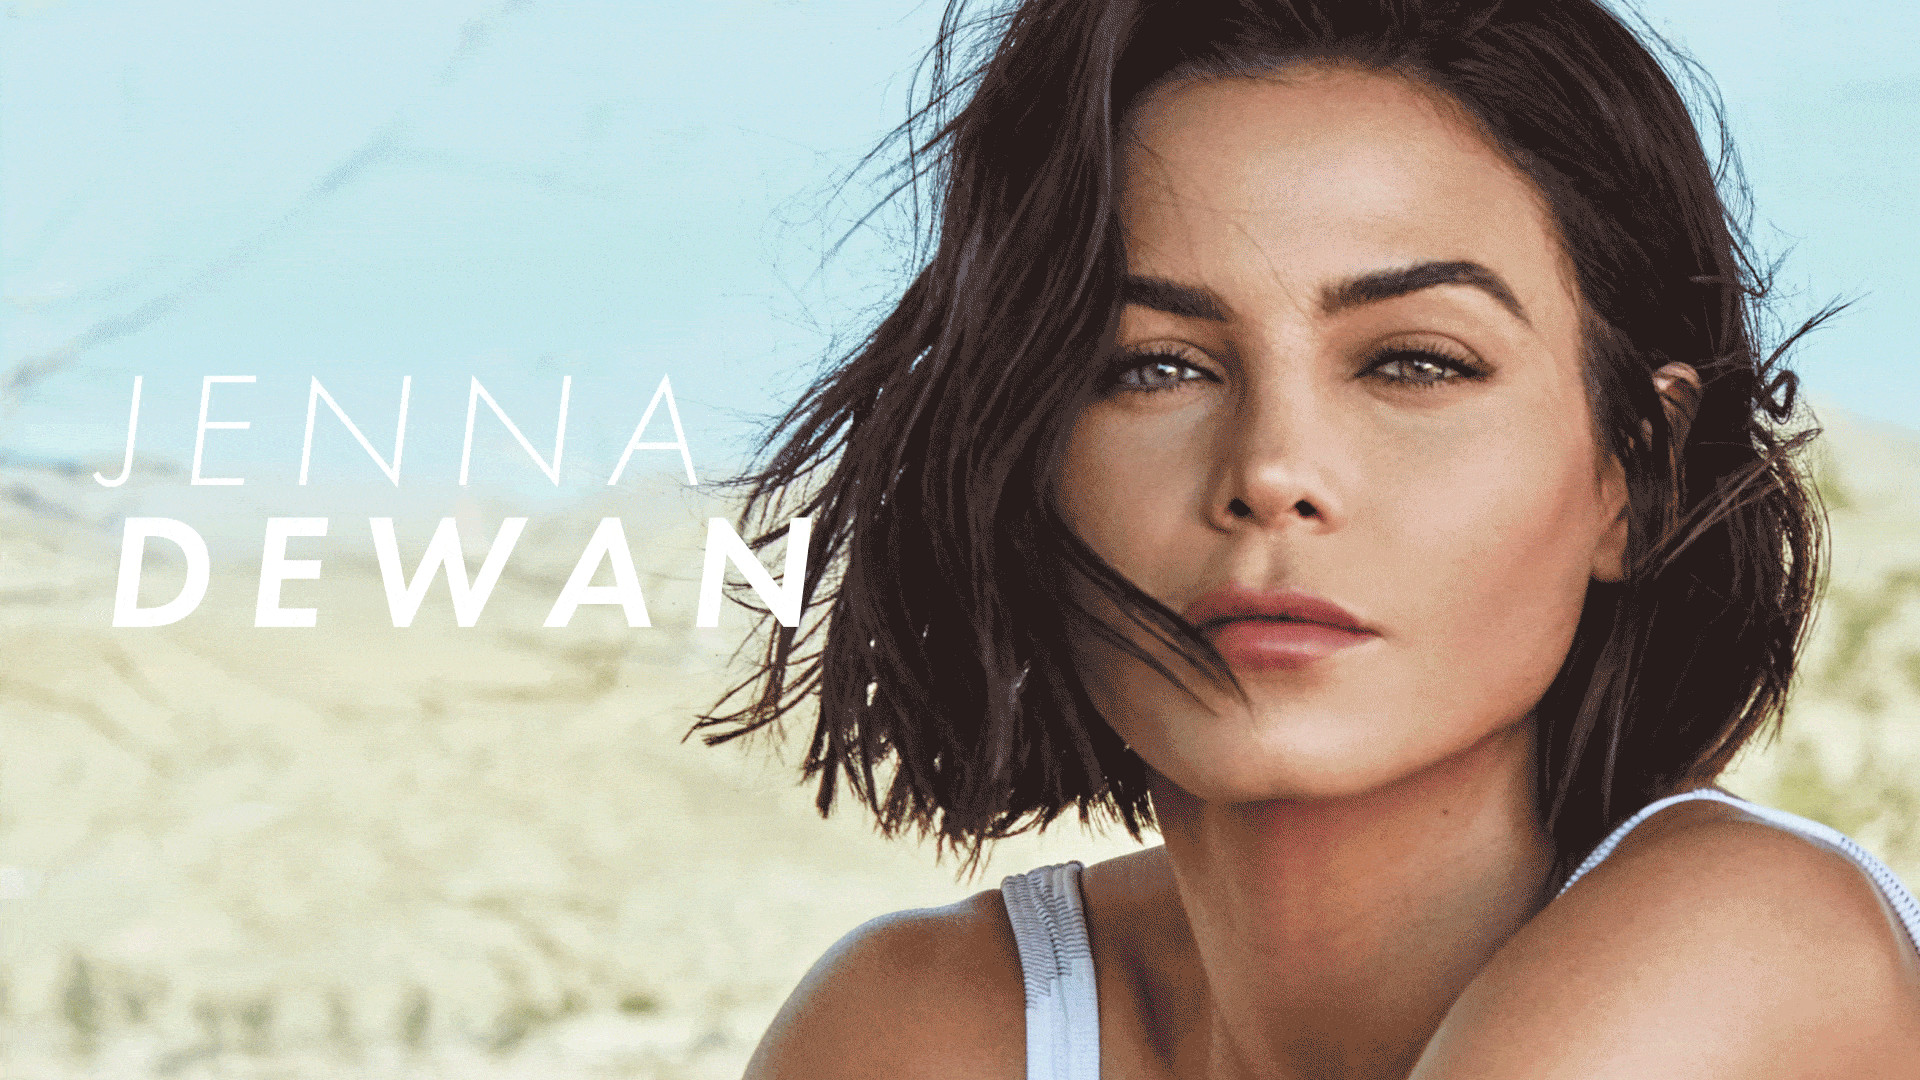 1920x1080 Jenna Dewan Covers Our January Issue and Talks Heartbreak, Dancing, and Her  New Boyfriend (No, Not That One)